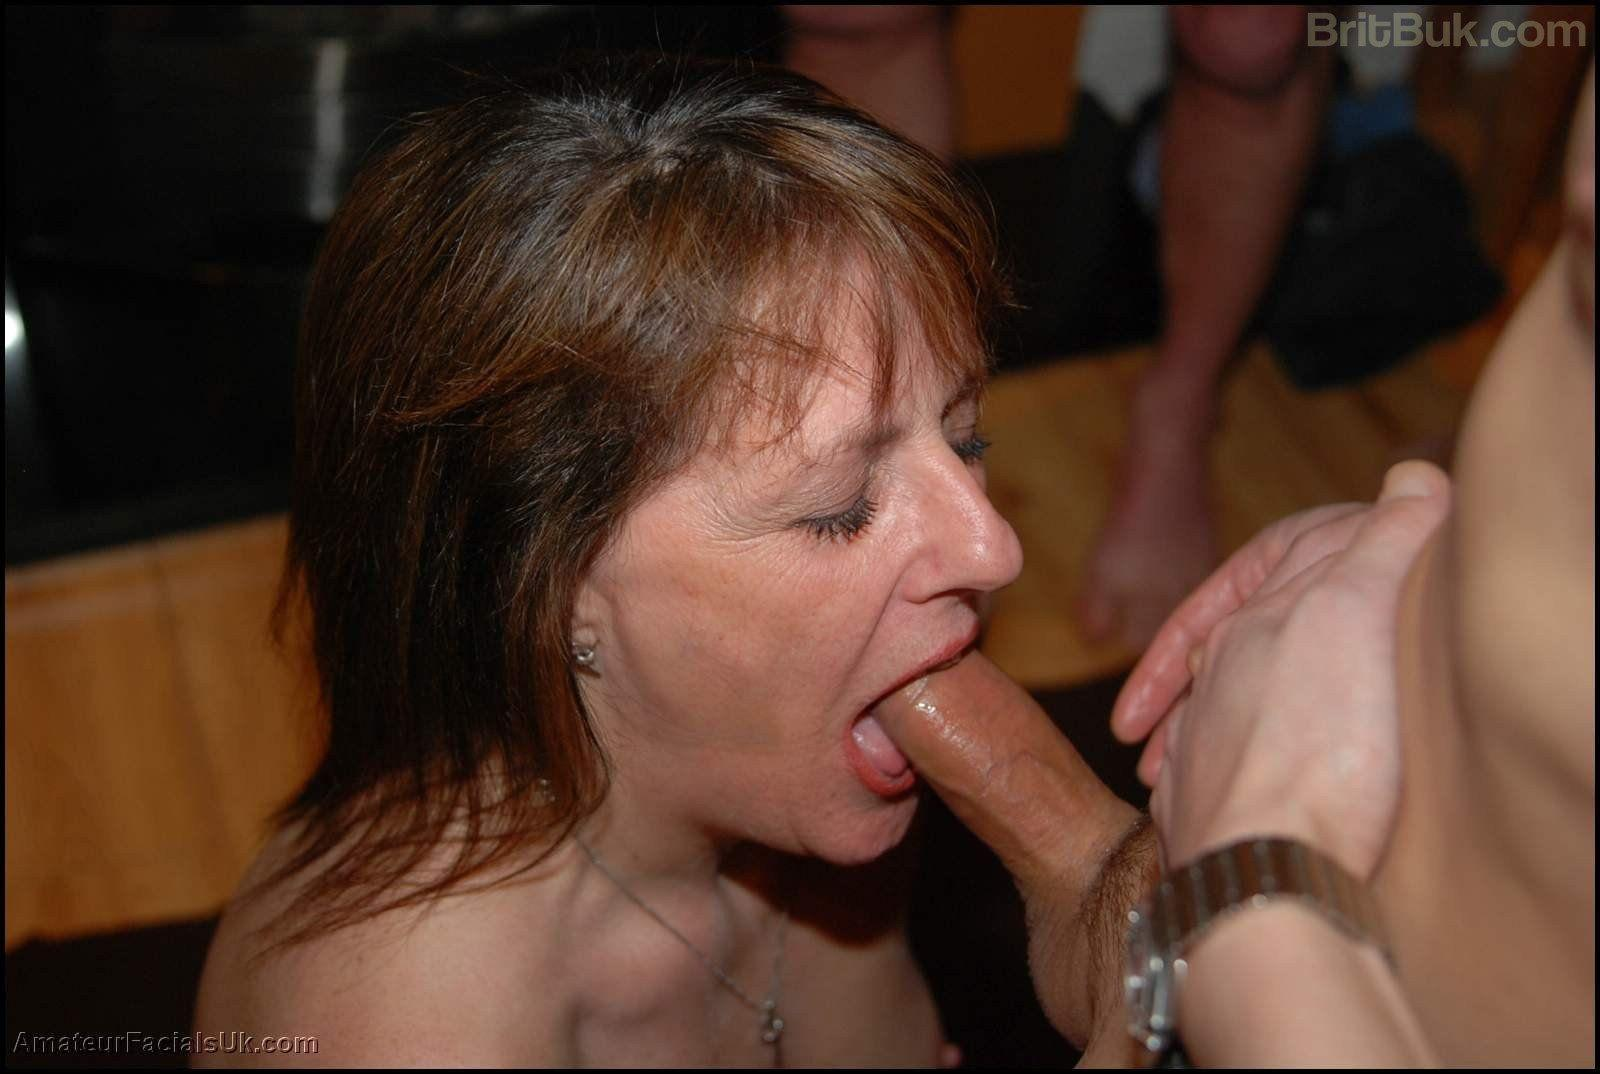 are not bikini italian lick cock and facial can not participate now